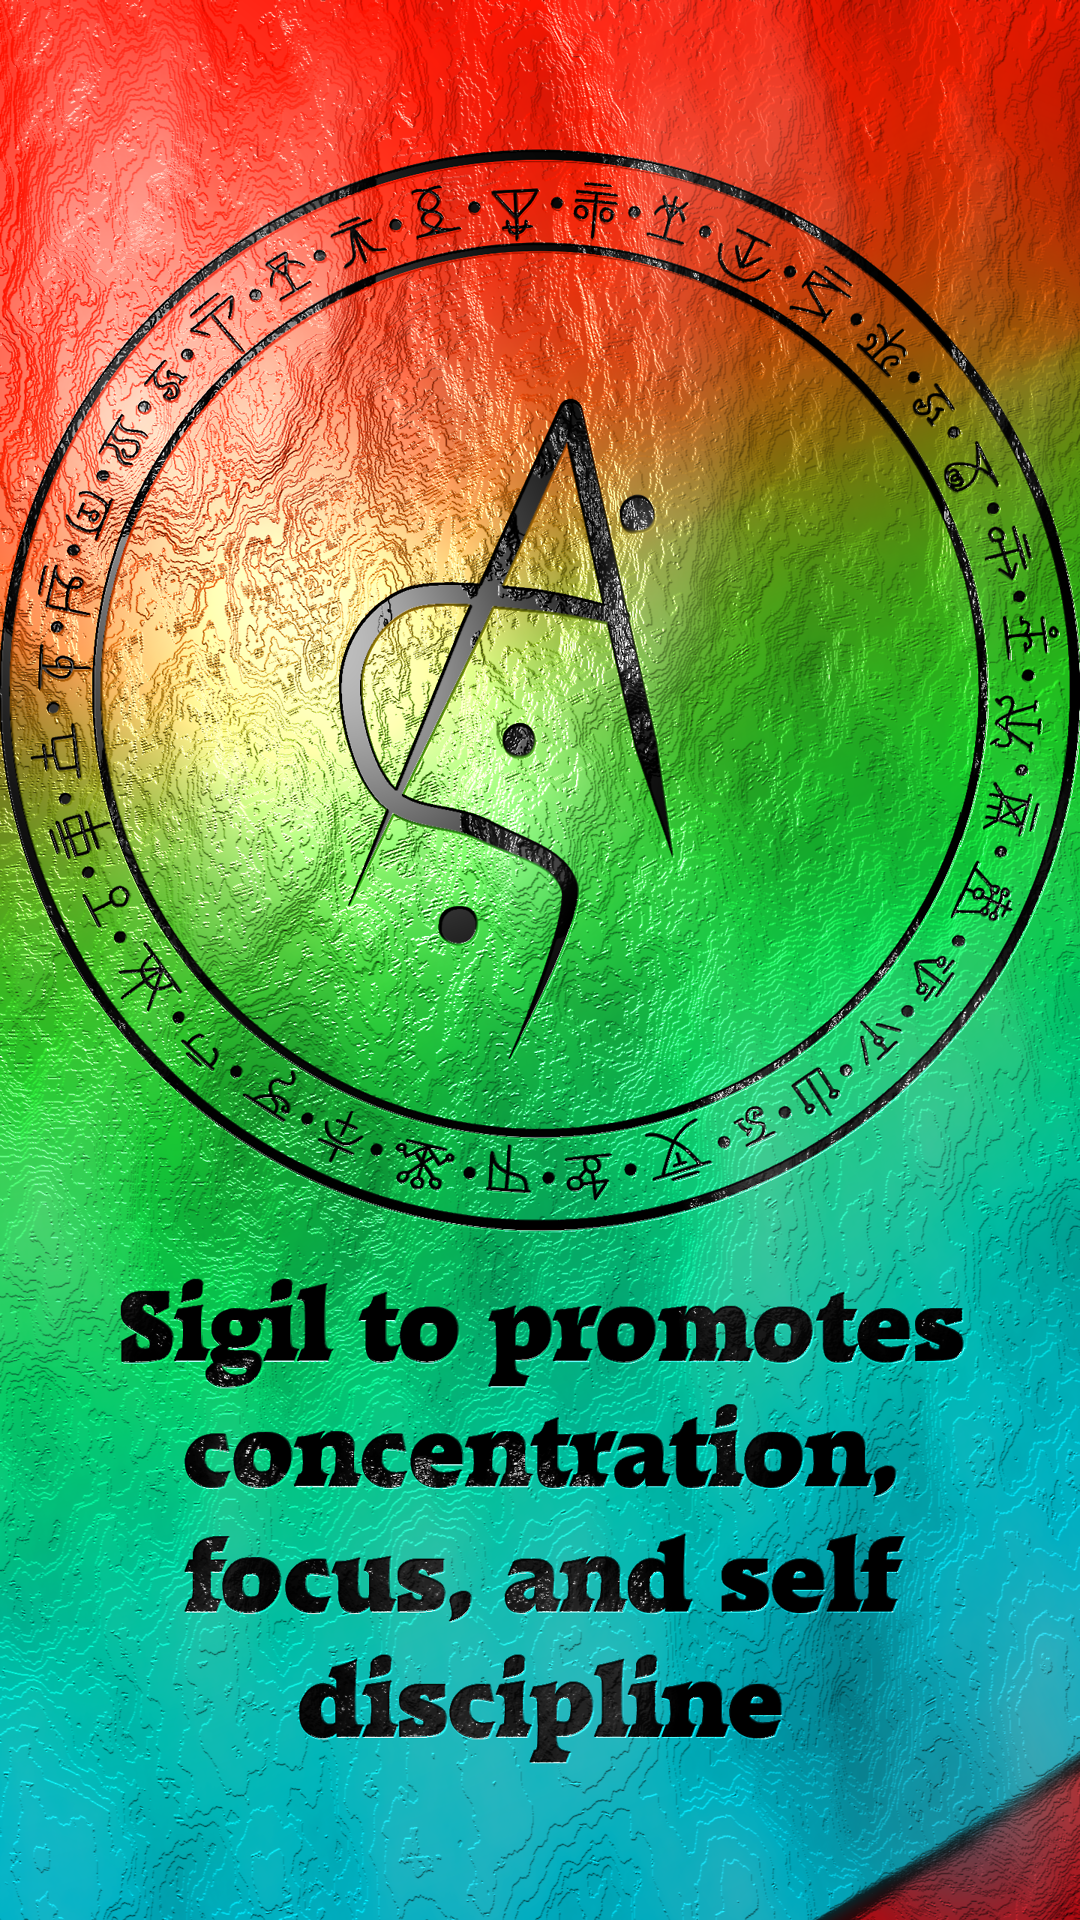 Sigil to promotes concentration, focus, and self discipli